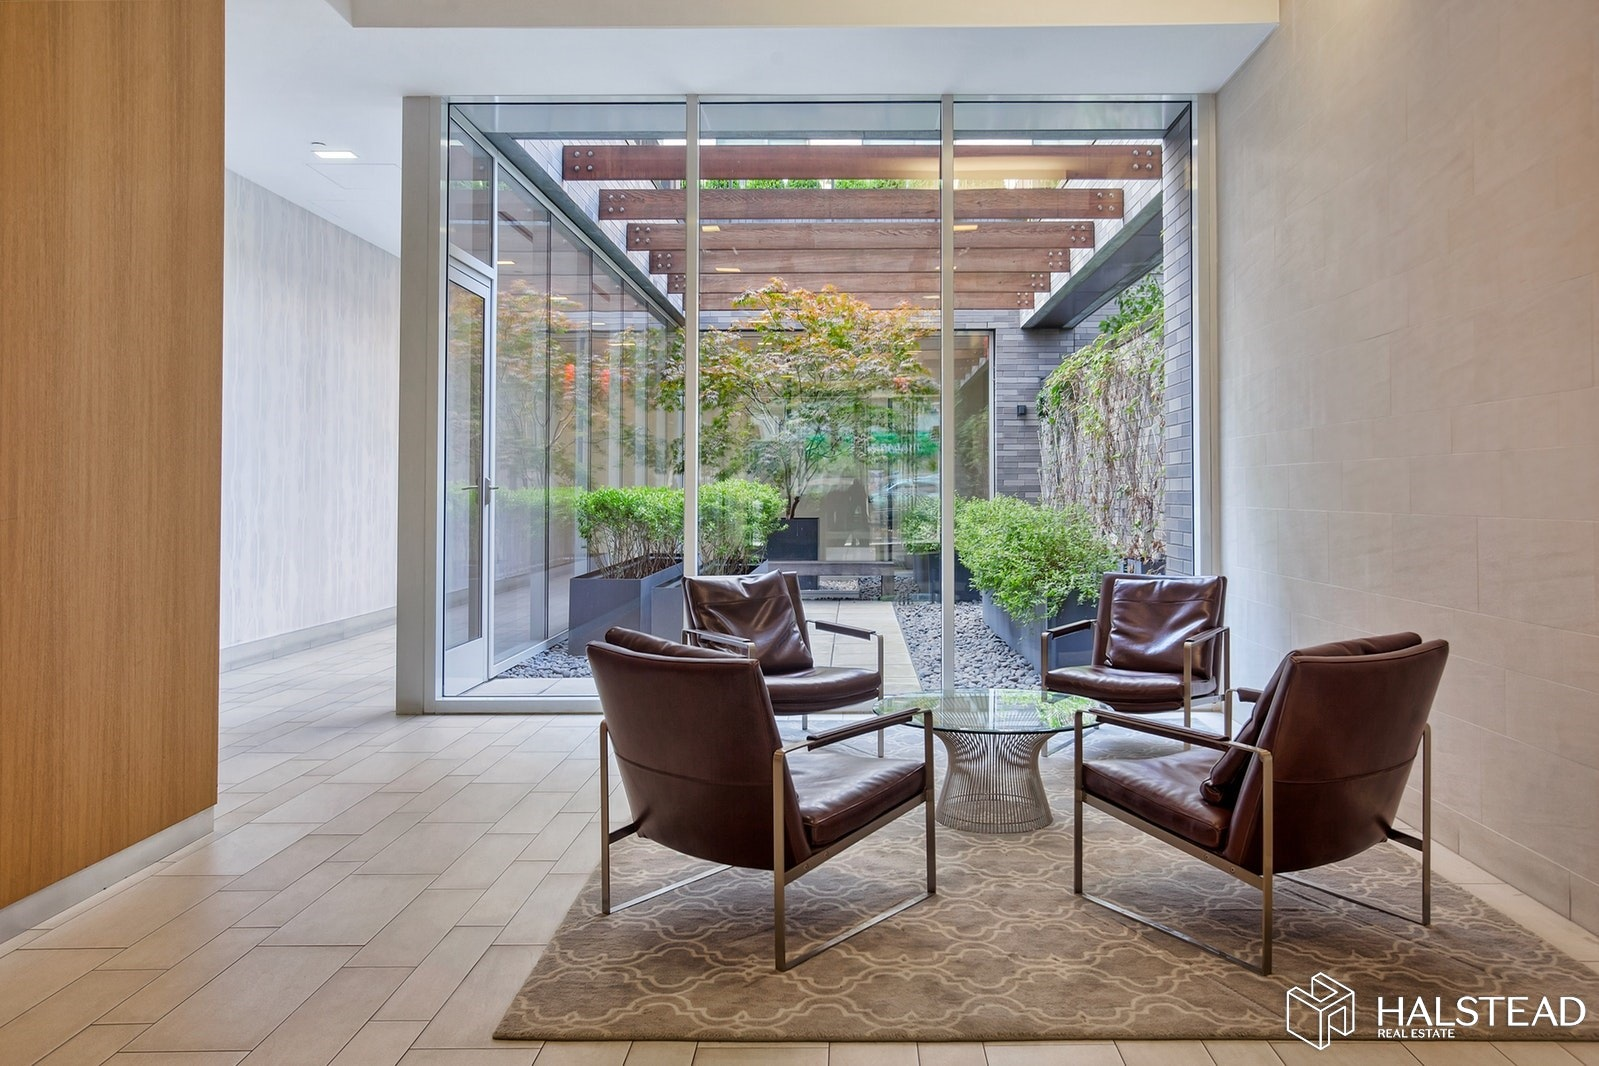 23 WEST 116TH STREET 10A, Central Harlem, $1,695,000, Web #: 20174179